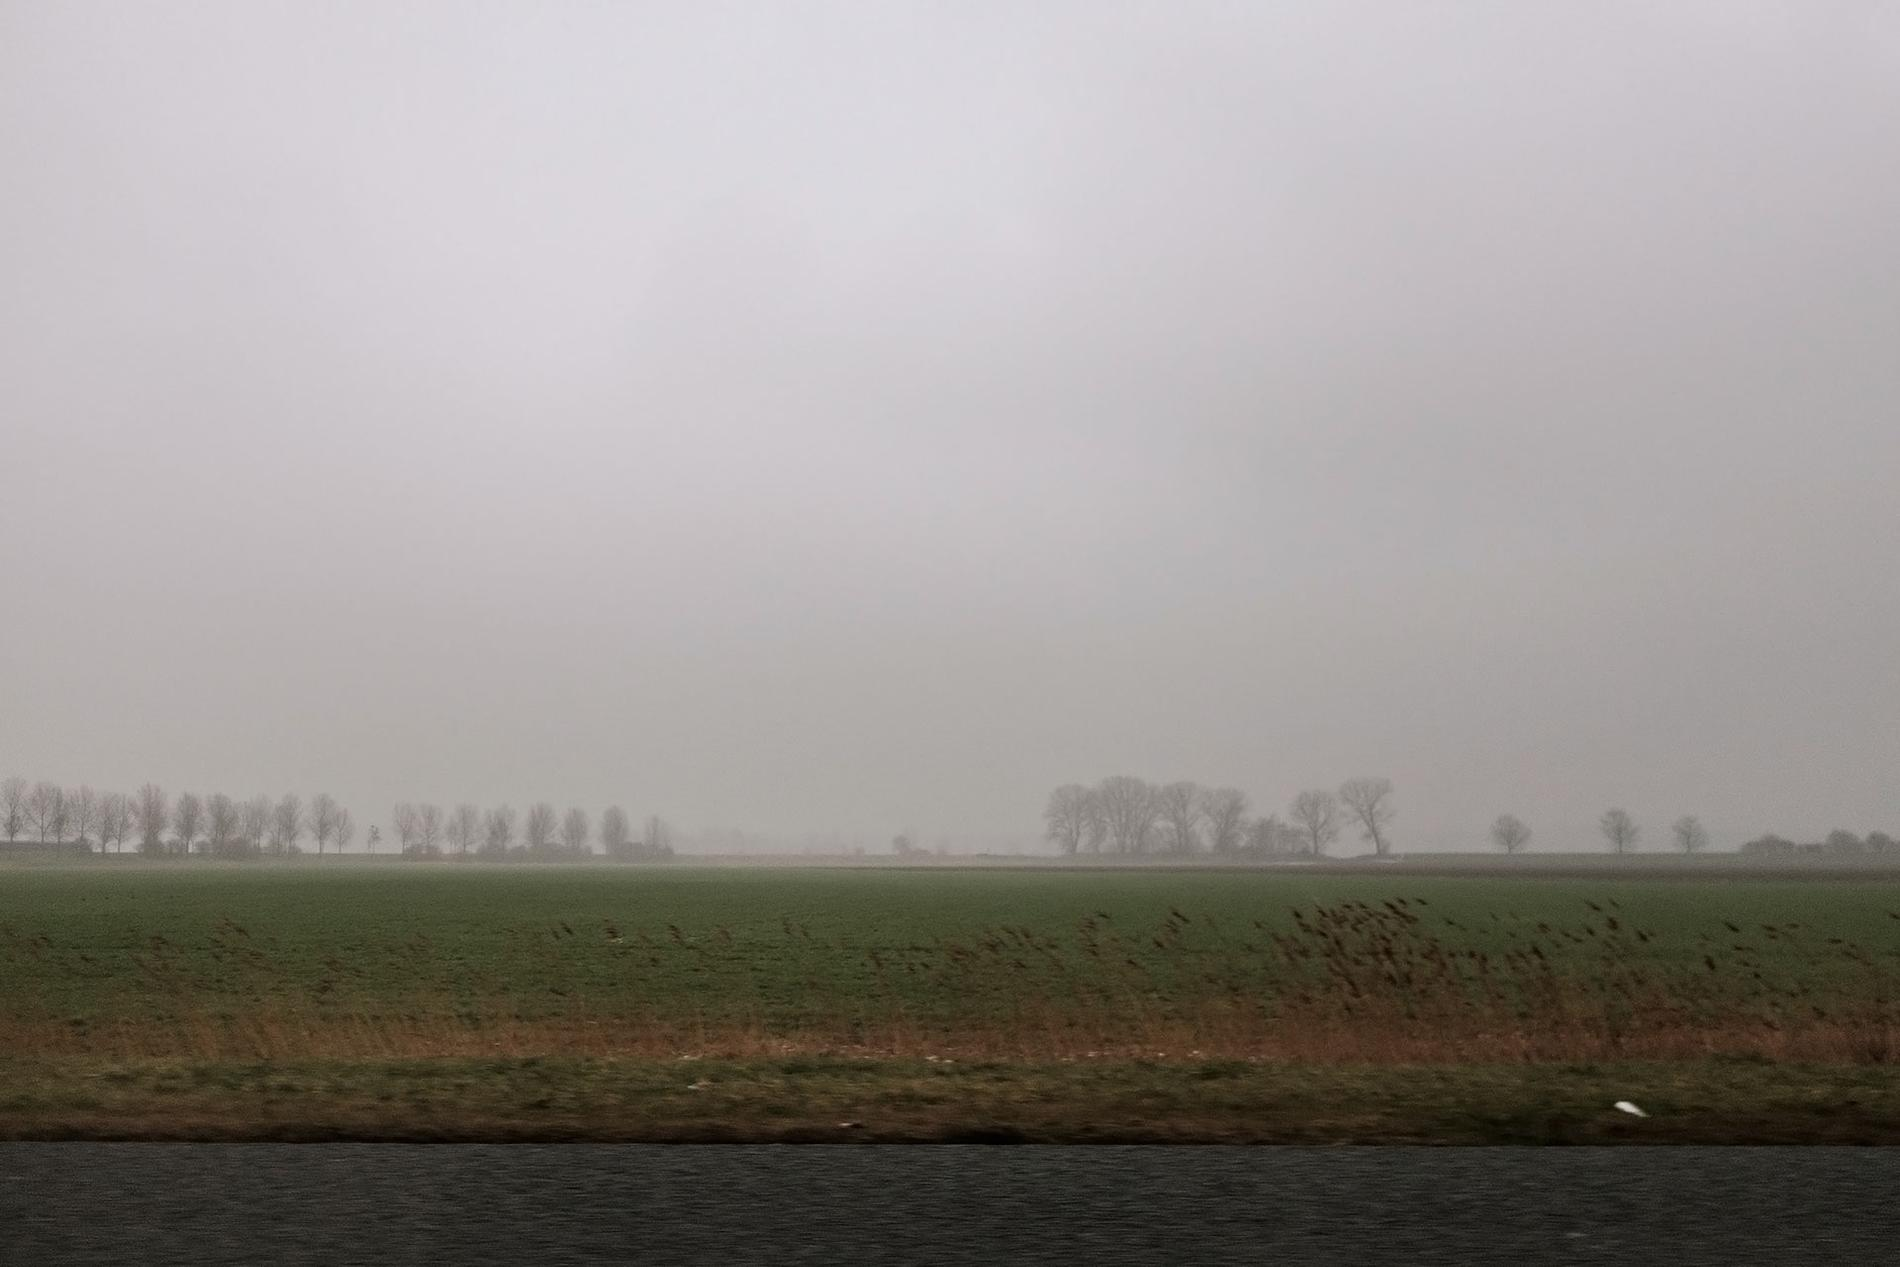 Dreary low country landscape in southern Holland.